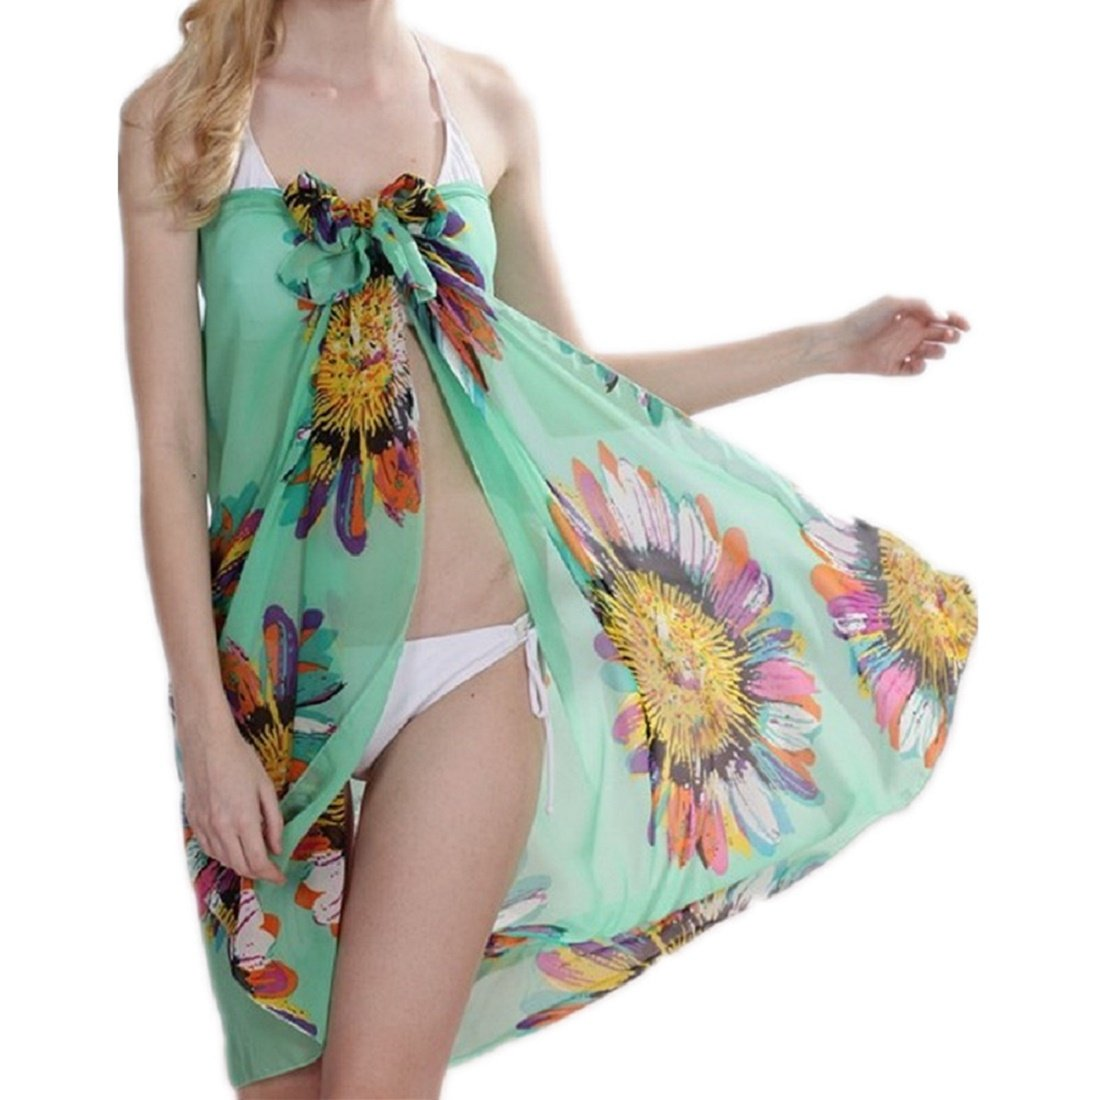 HeartBee Flower Mixed Color Design Beach Sarong Cover Up HB111080